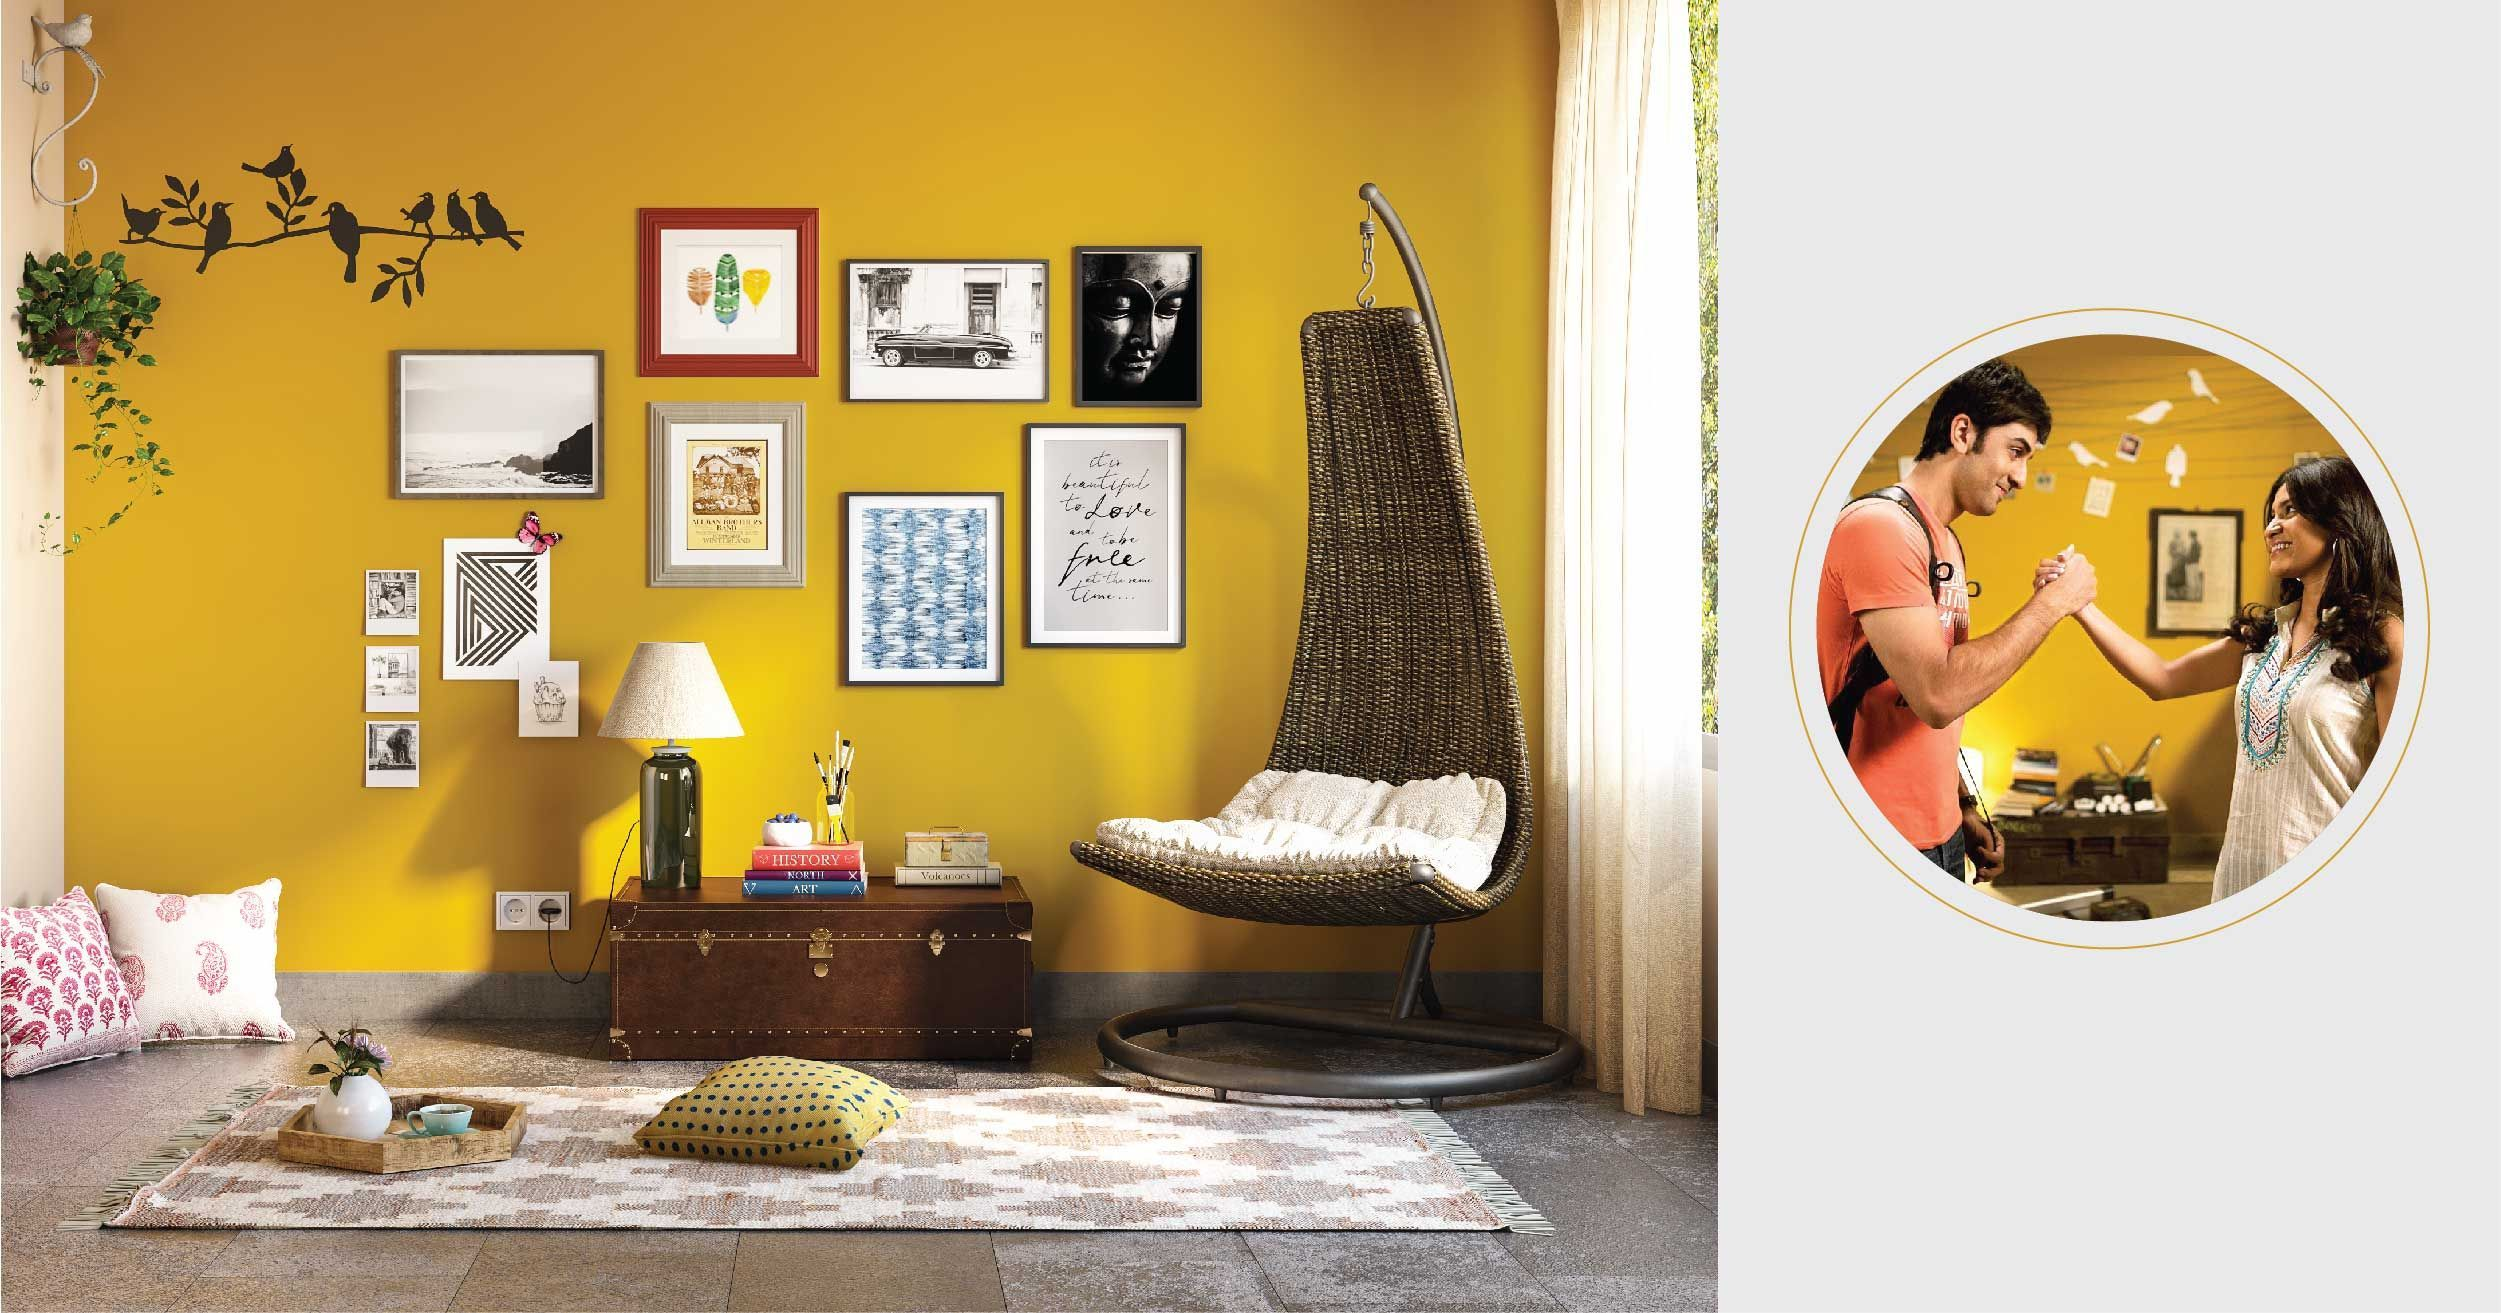 Wake Up Sid-inspired Interiors to Make the Most of a Compact Home